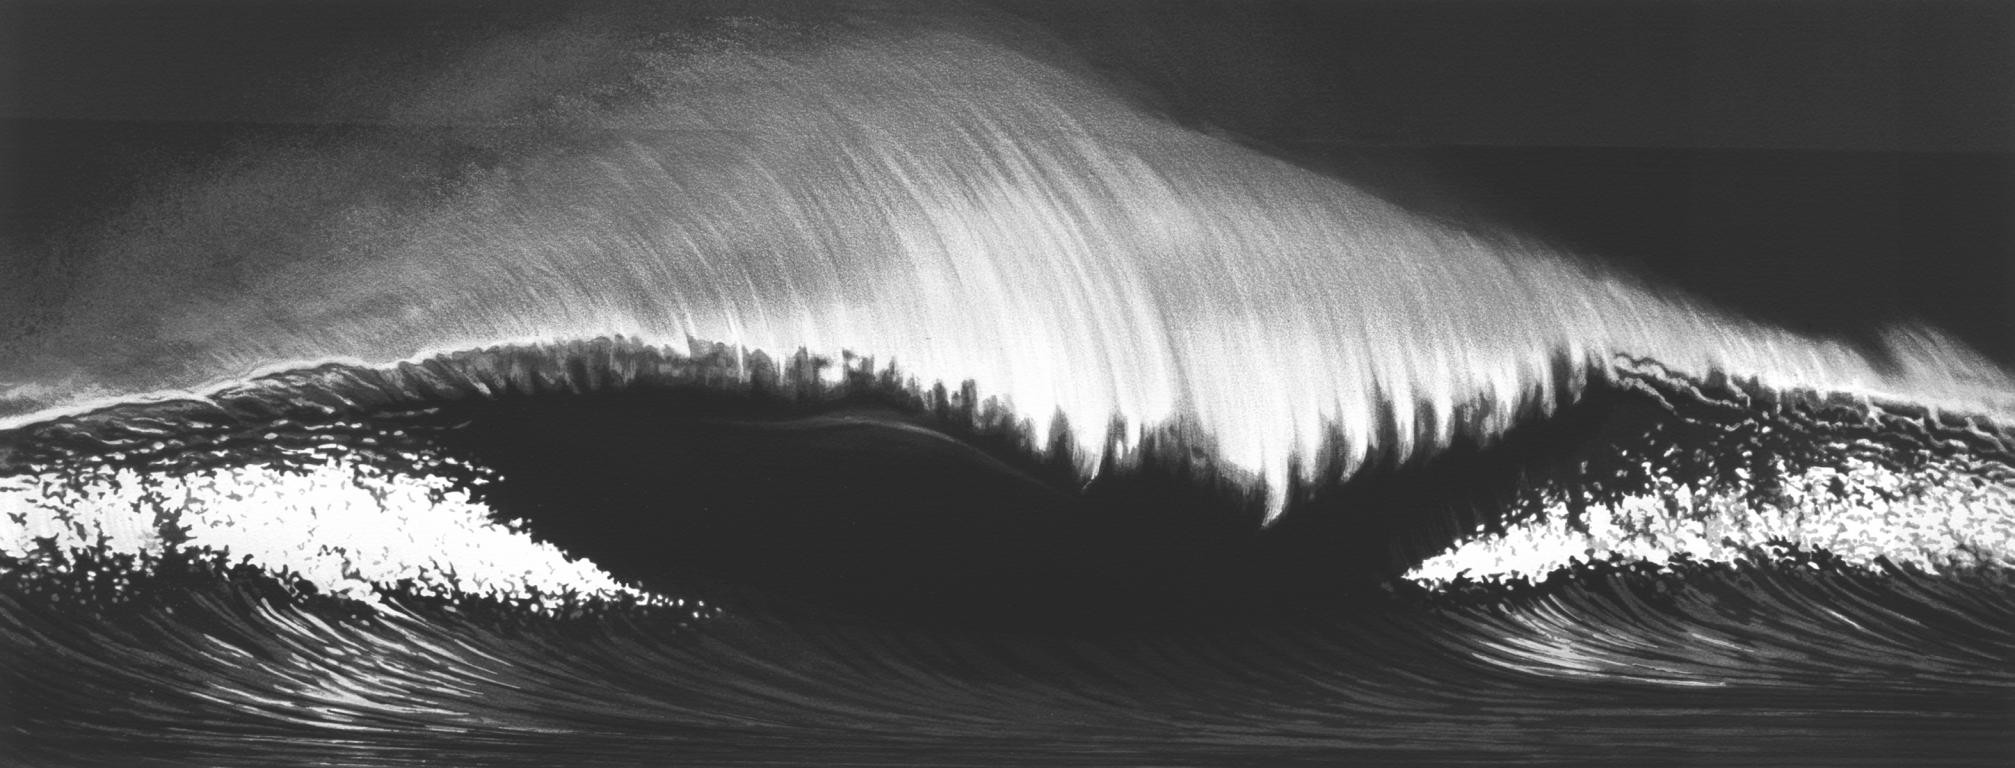 Robert Longo, Wave